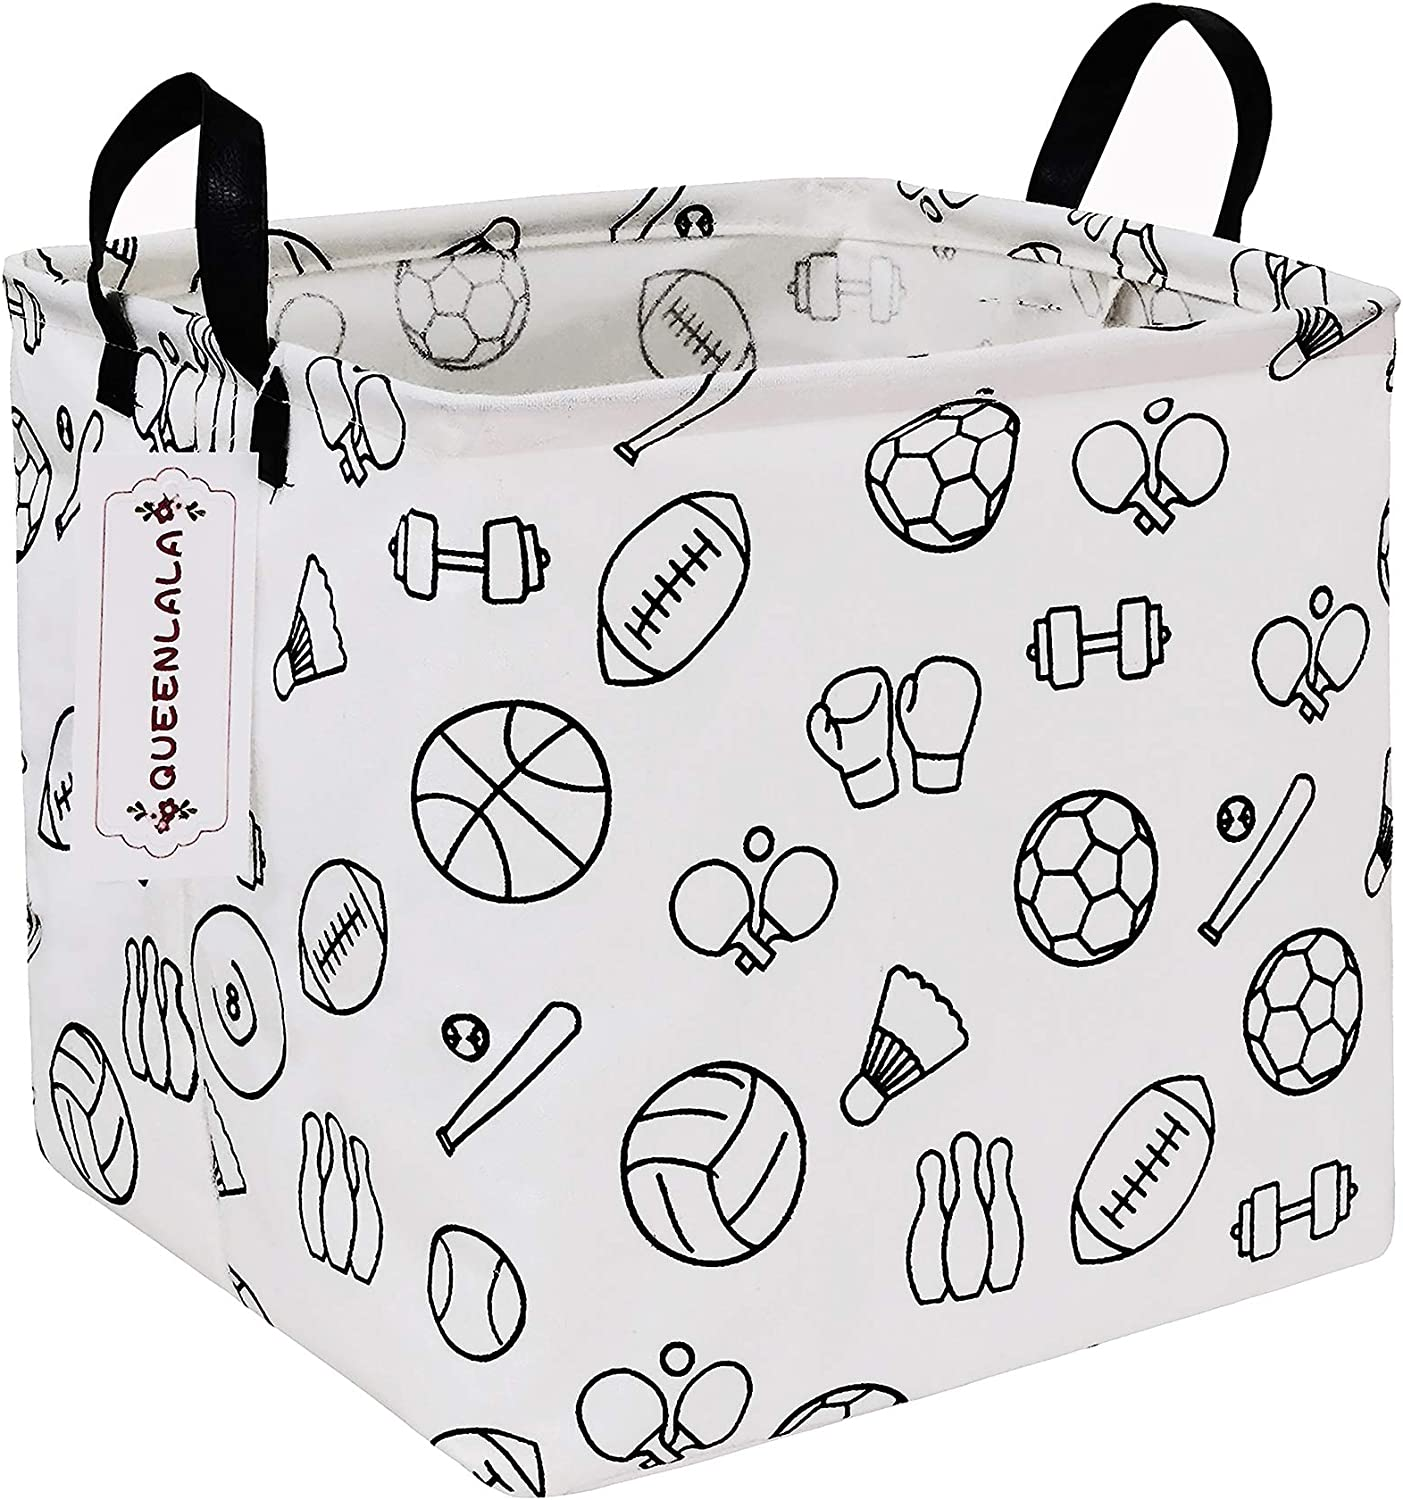 QUEENLALA Square Laundry Max 62% OFF Hamper Basket Gifts Foldable Nursery